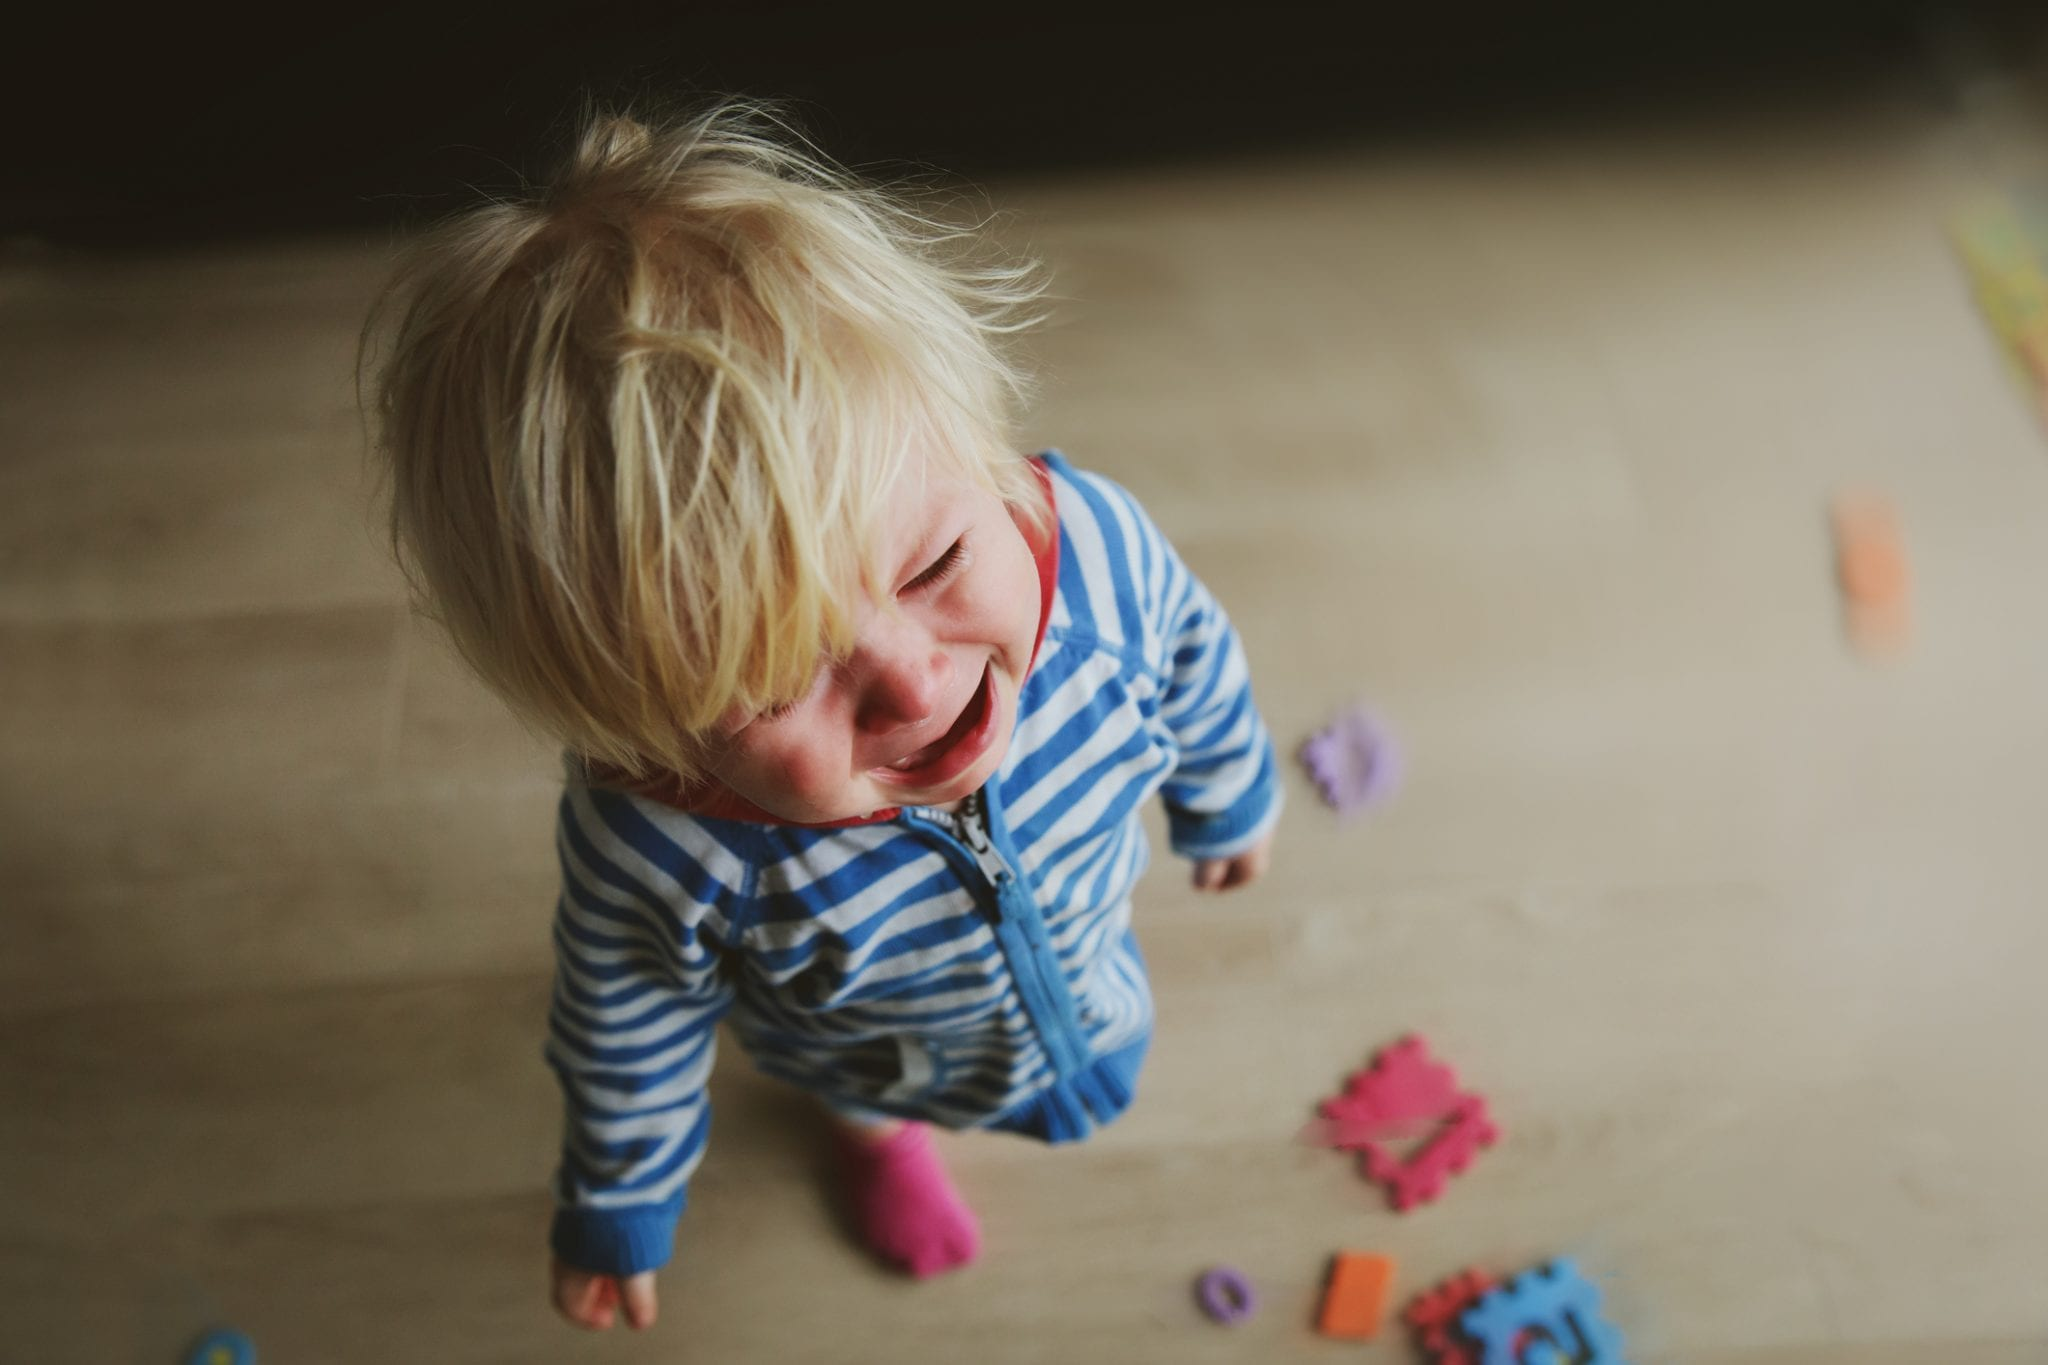 Why Does My Toddler Do That? | toddler behavior, toddler behavior issues